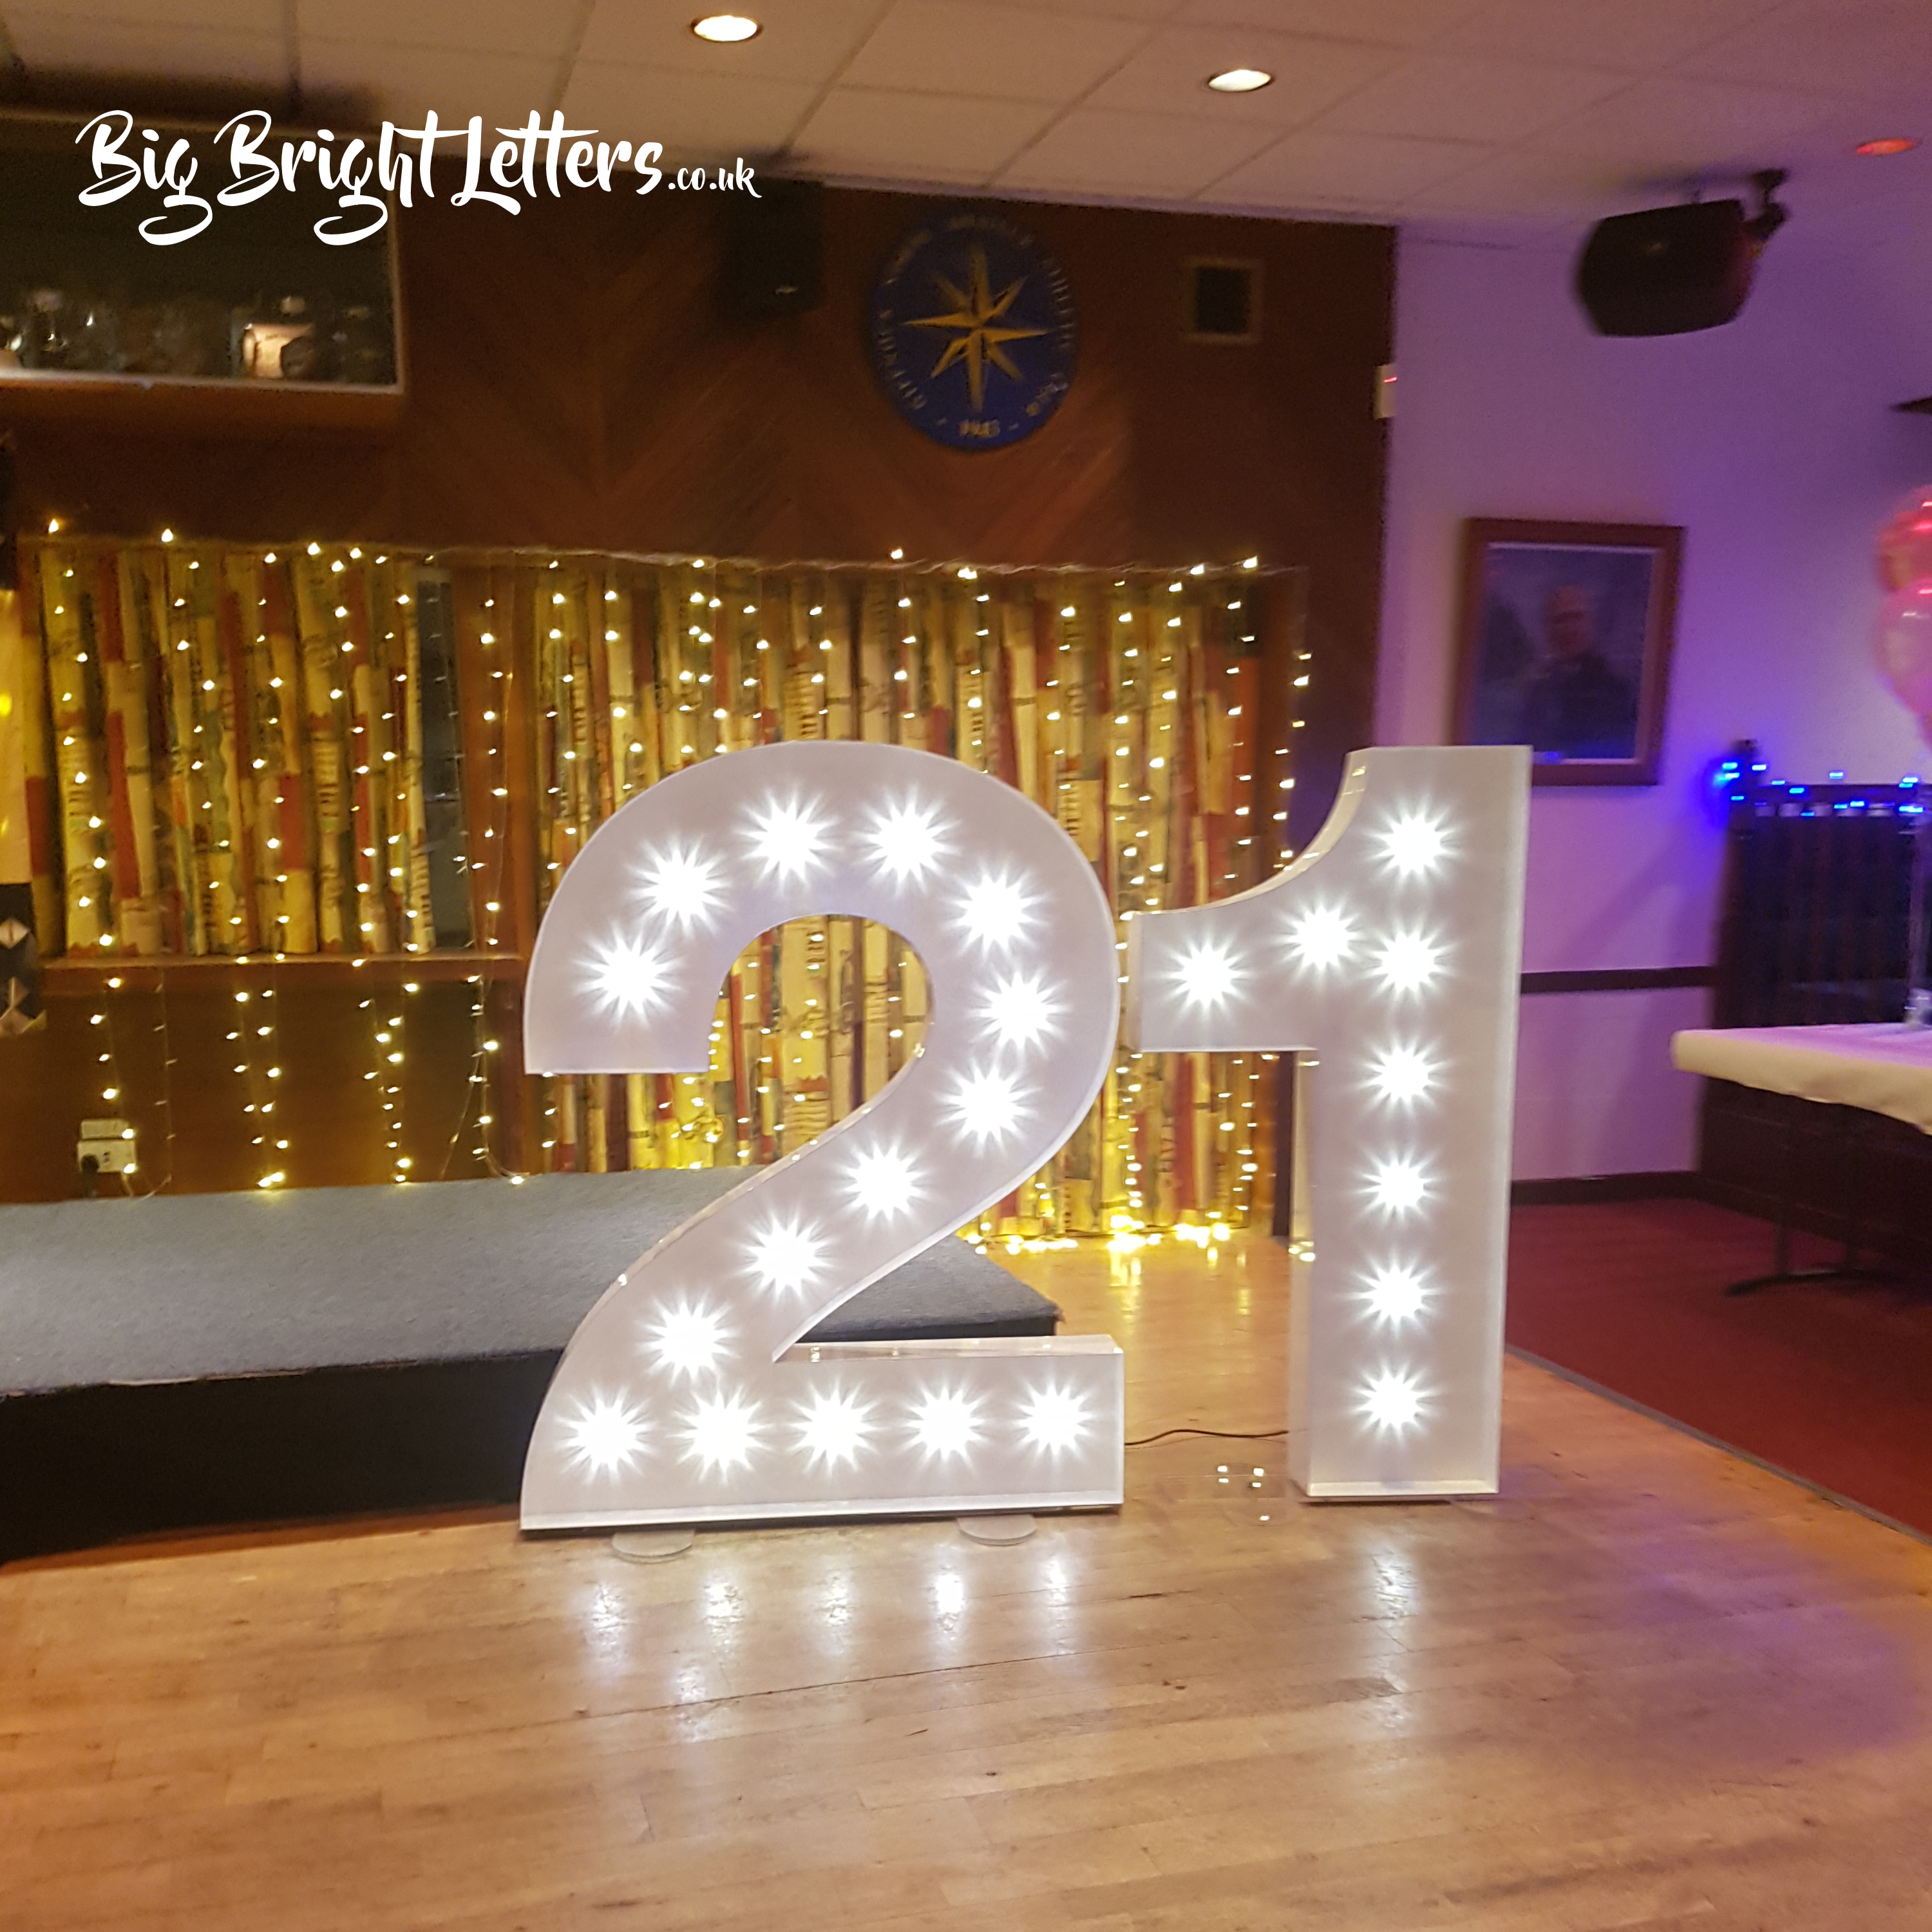 Our 5ft 21 Lights Every Number And Letter In Stock Birthdaylights Letterlights Bigbrightletters Giant21ligh Birthday Lights Light Letters Birthday Numbers